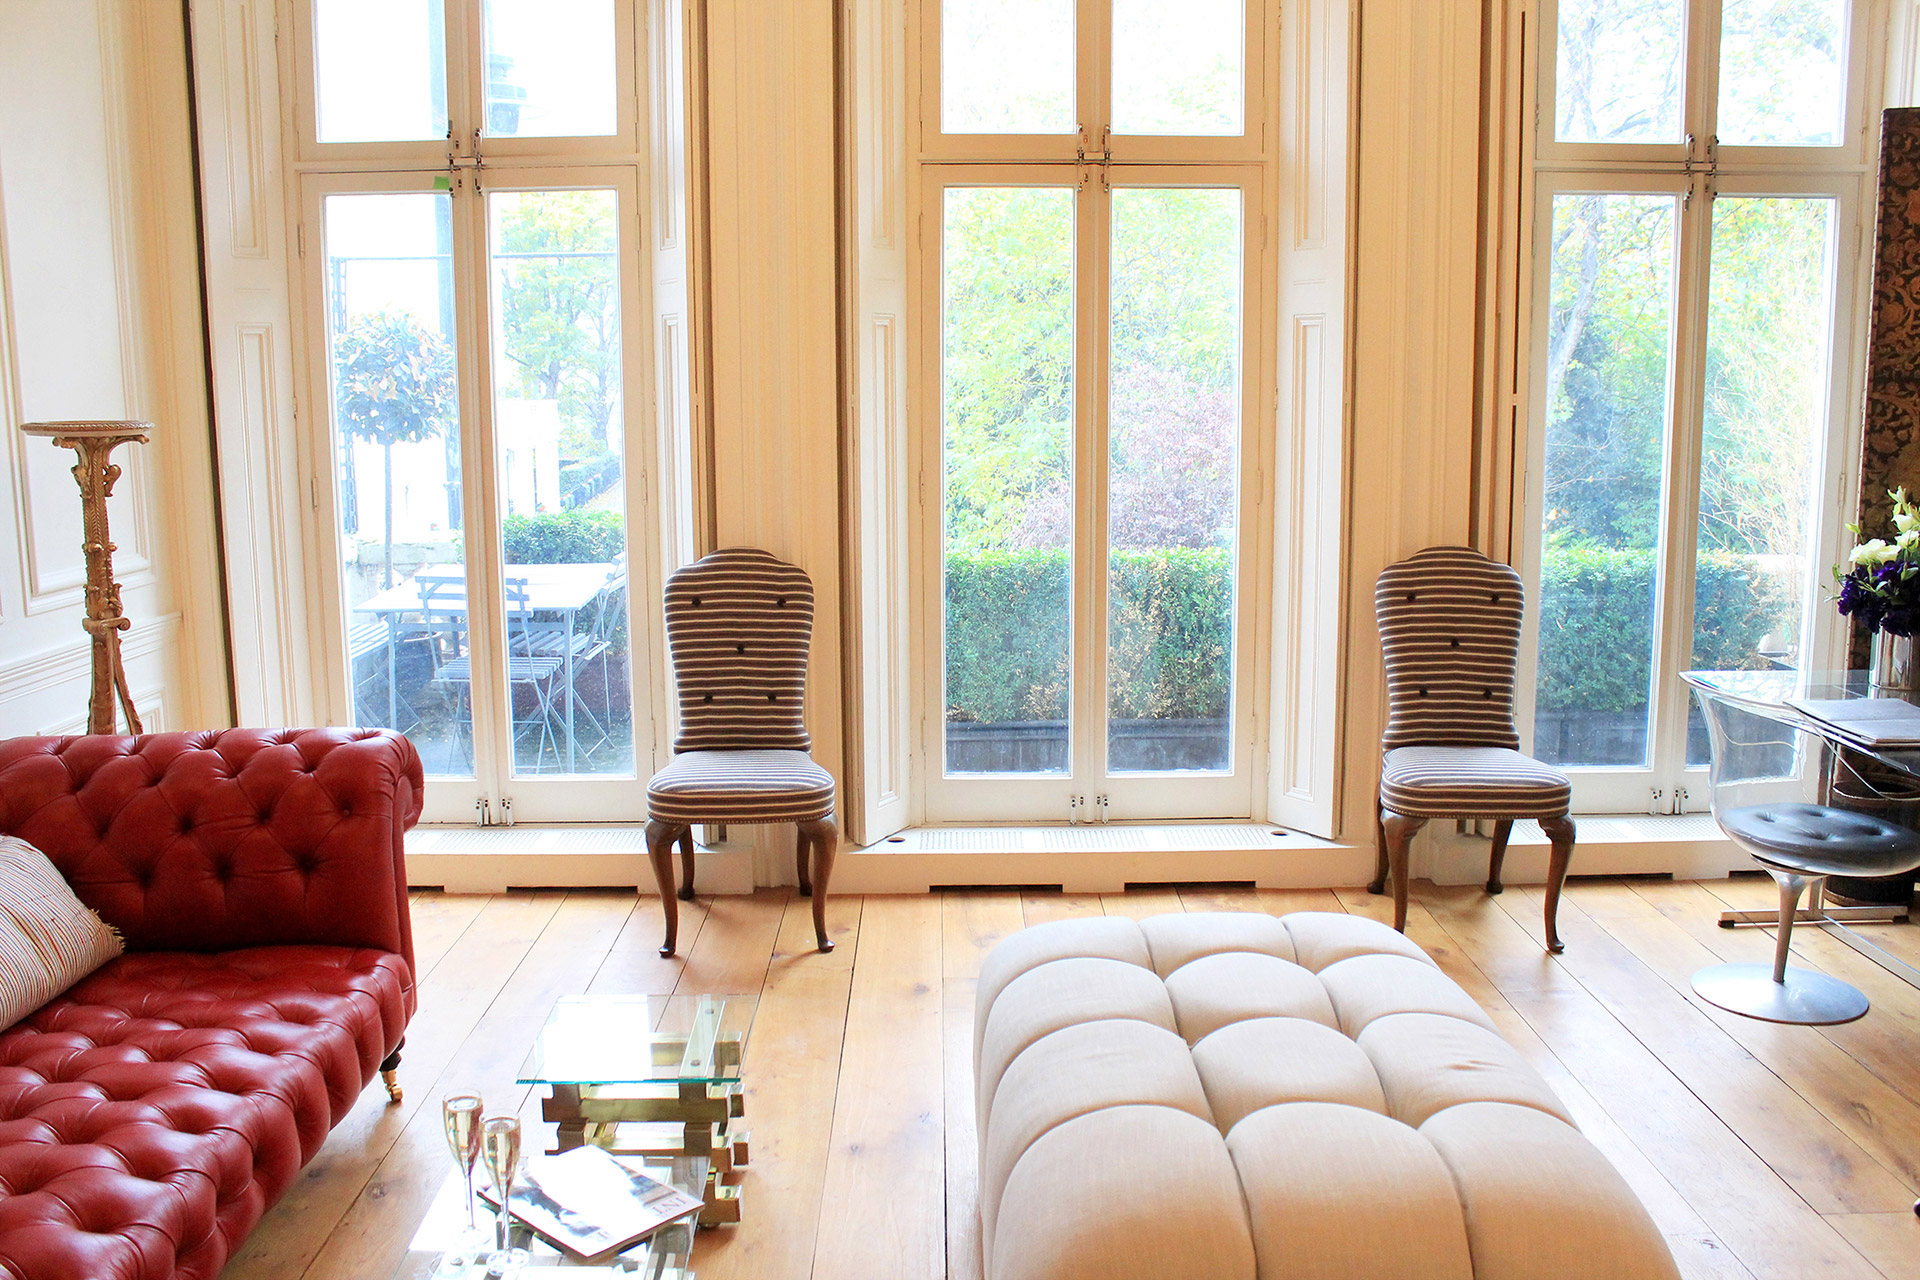 Large French Doors Open To Terrace And Balcony With Table